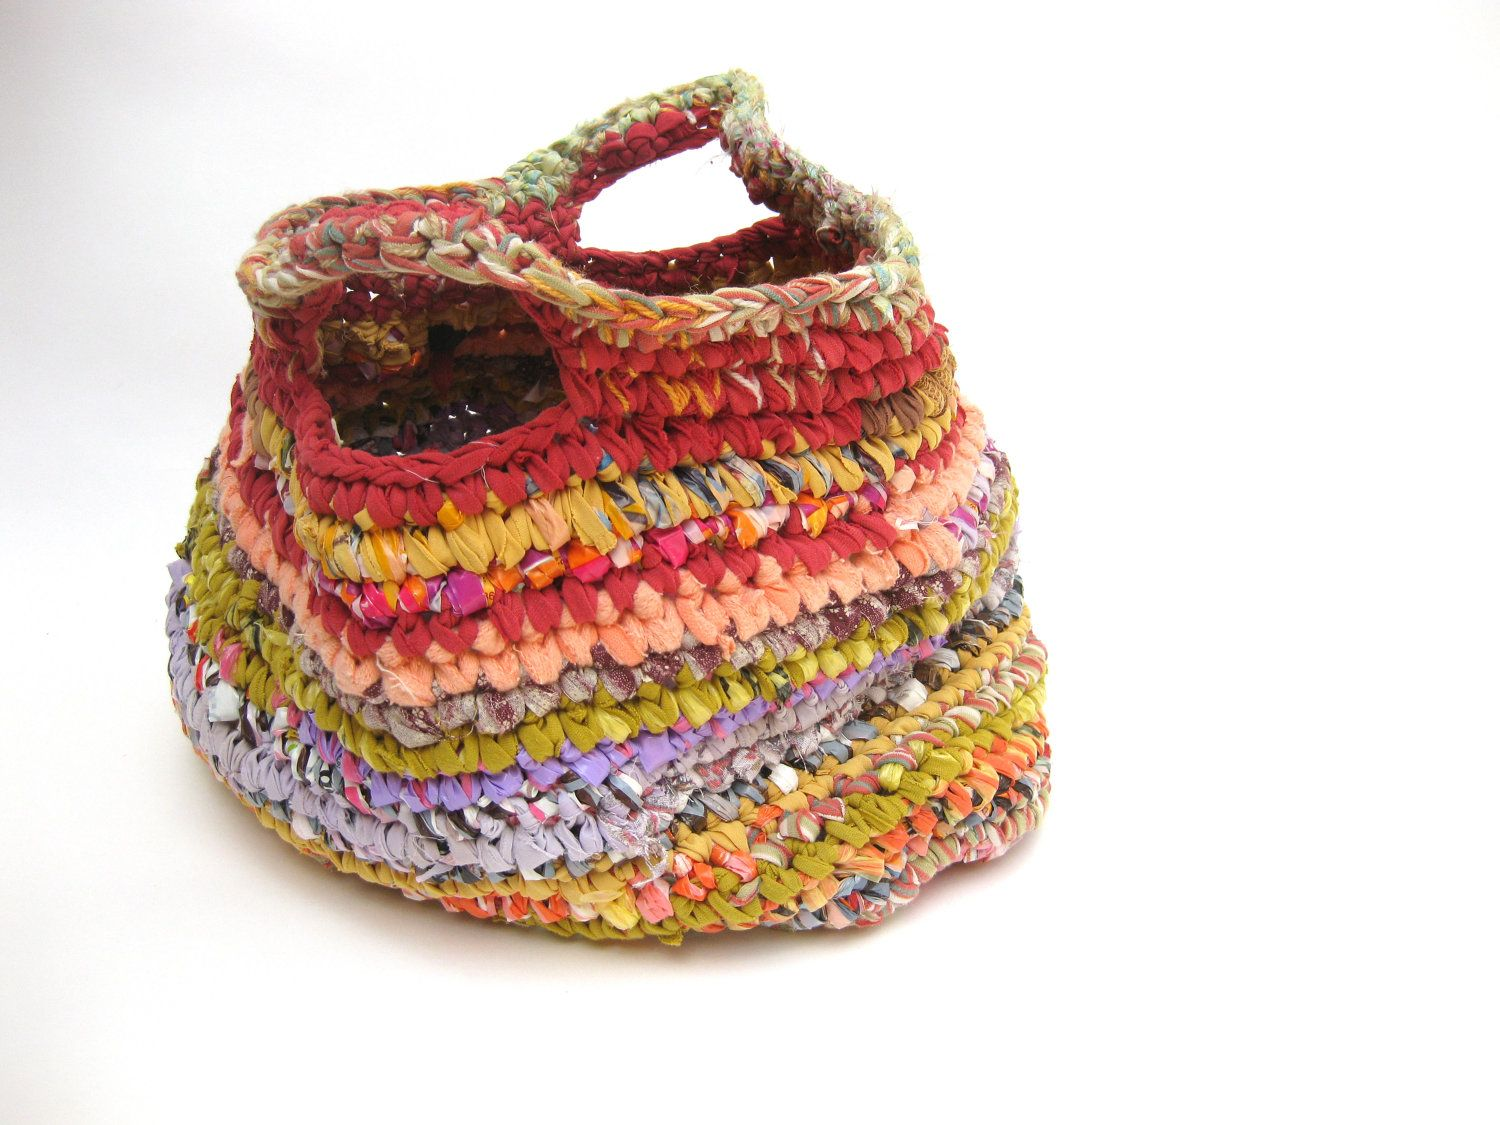 Colorful large fabric crochet basket